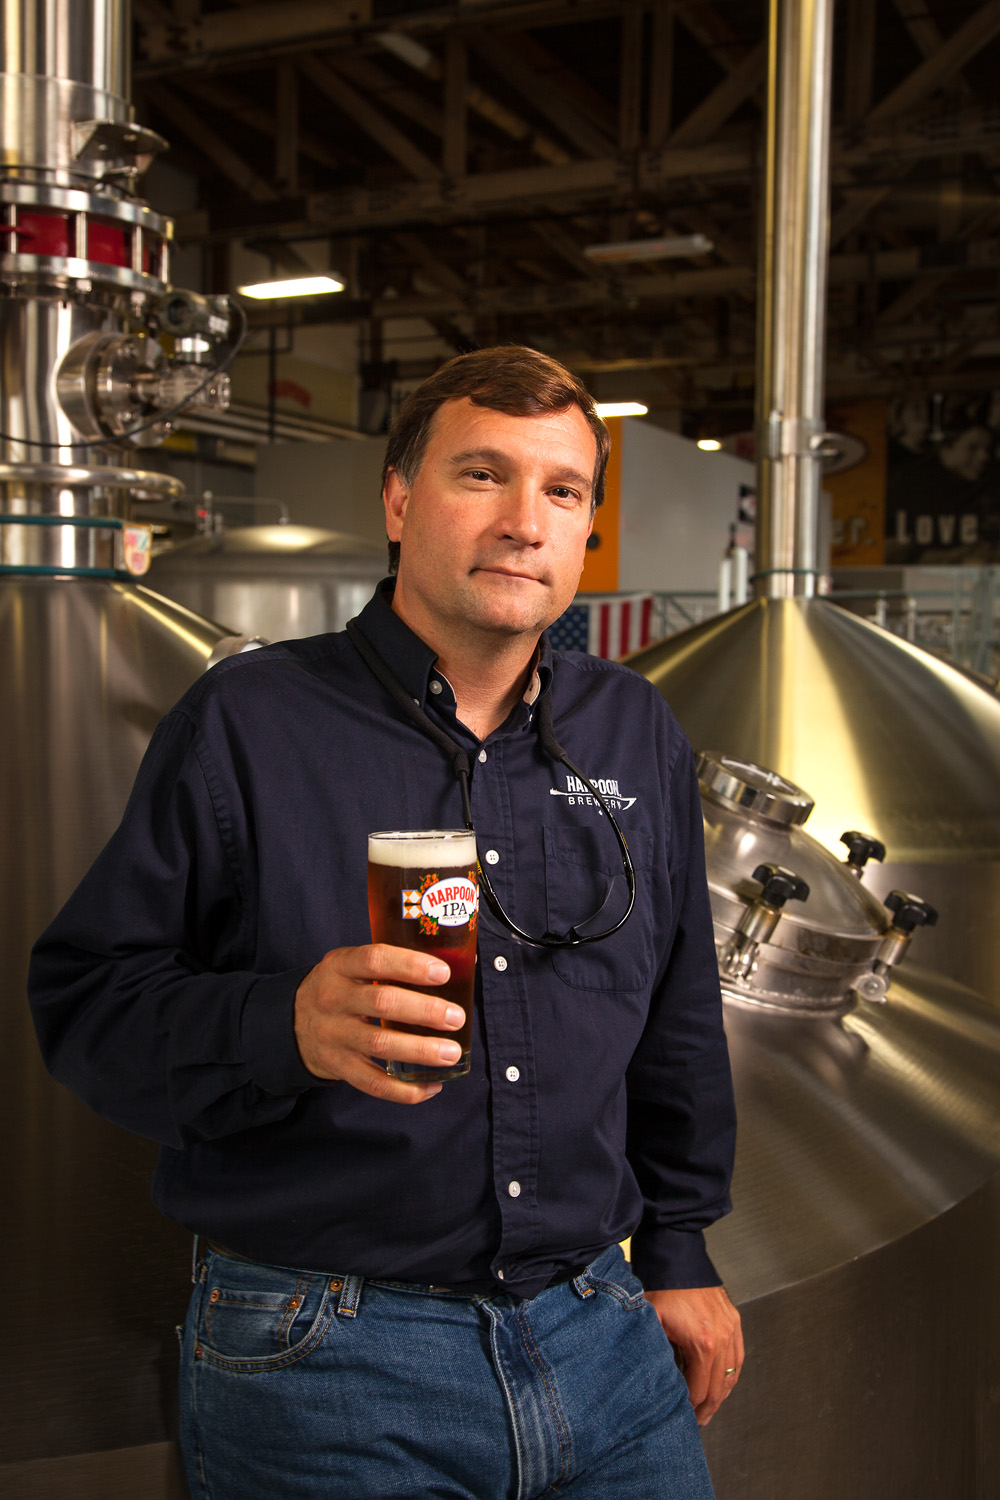 Al Marzi, Chief Brewing Officer Harpoon Brewery Boston, MA Established in 1986